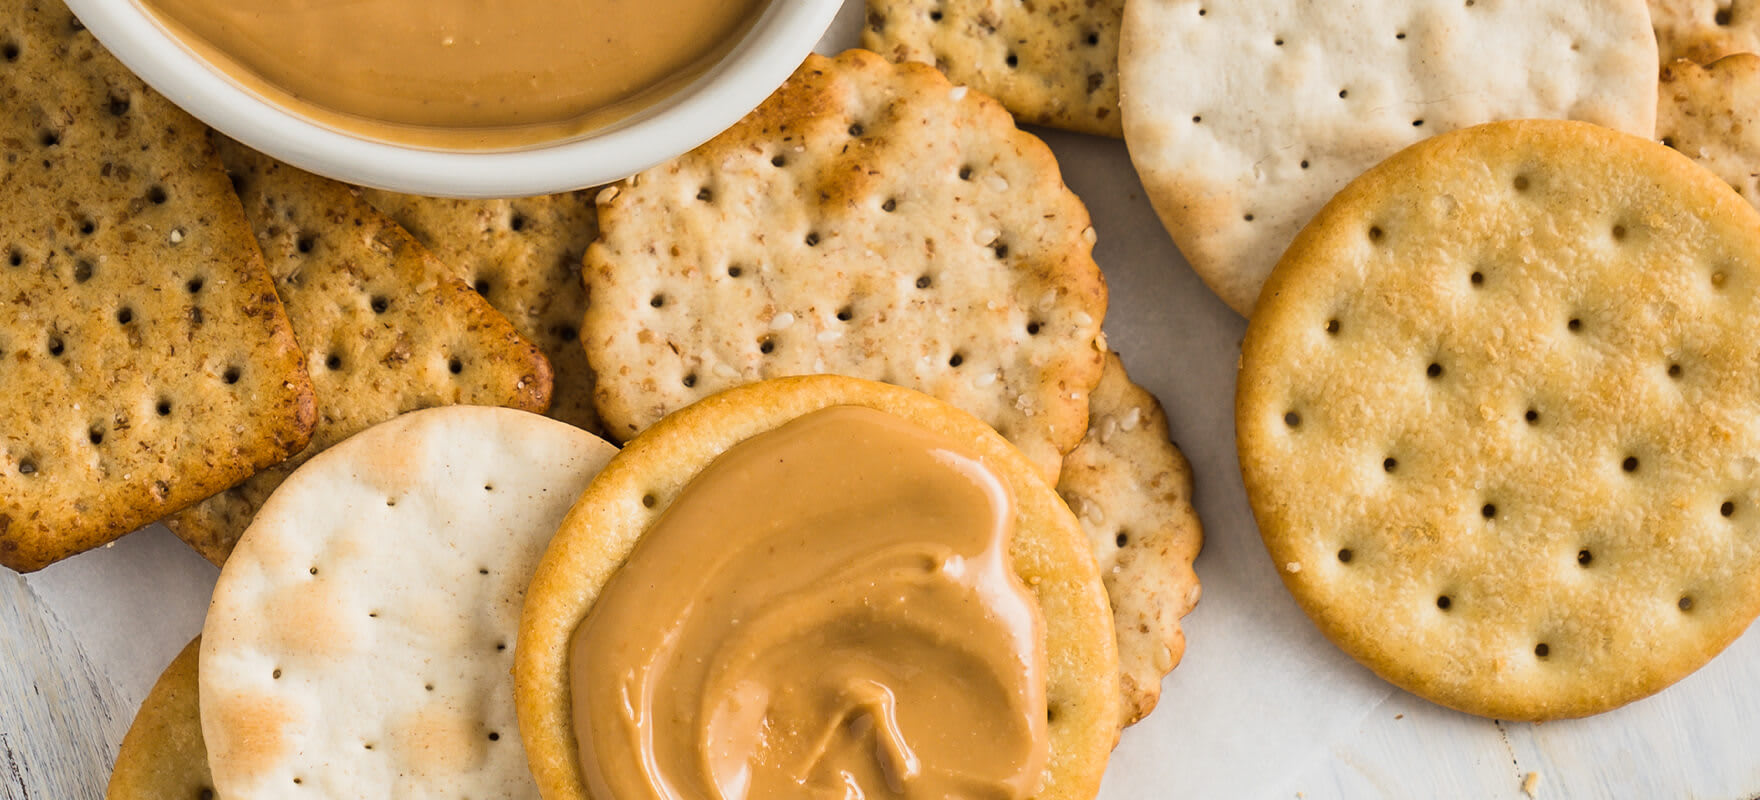 Peanut butter with crackers image 2